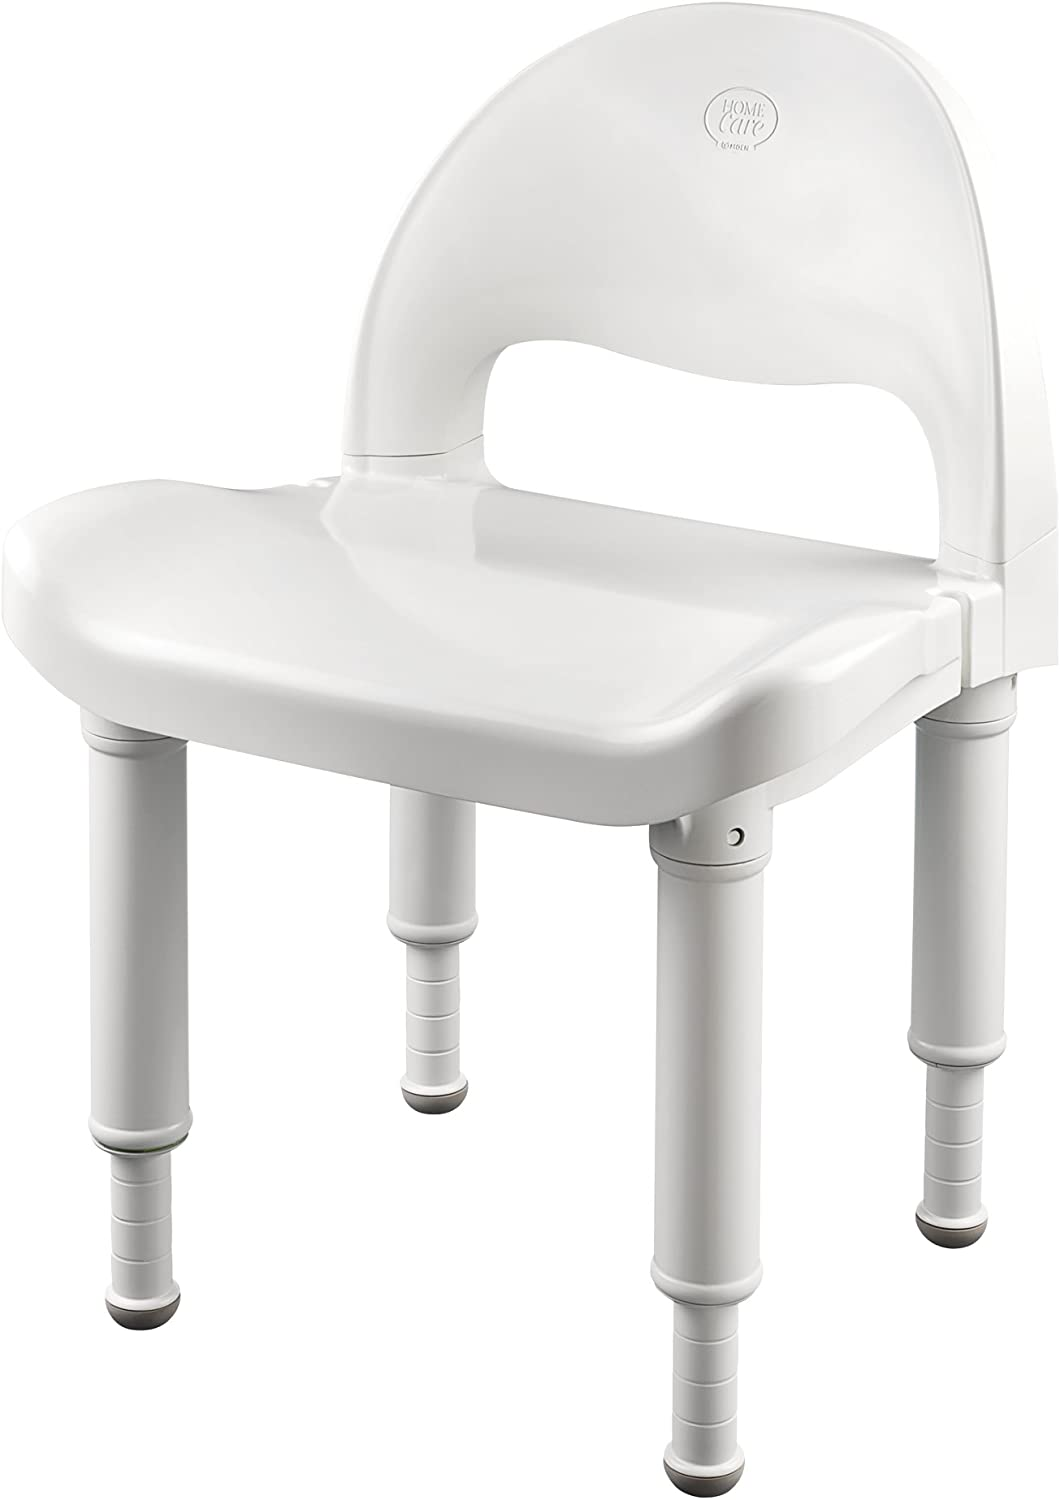 B0045EFO2Q Moen DN7064 Bath Safety Shower Chair, Glacier 61oFdPezv2L